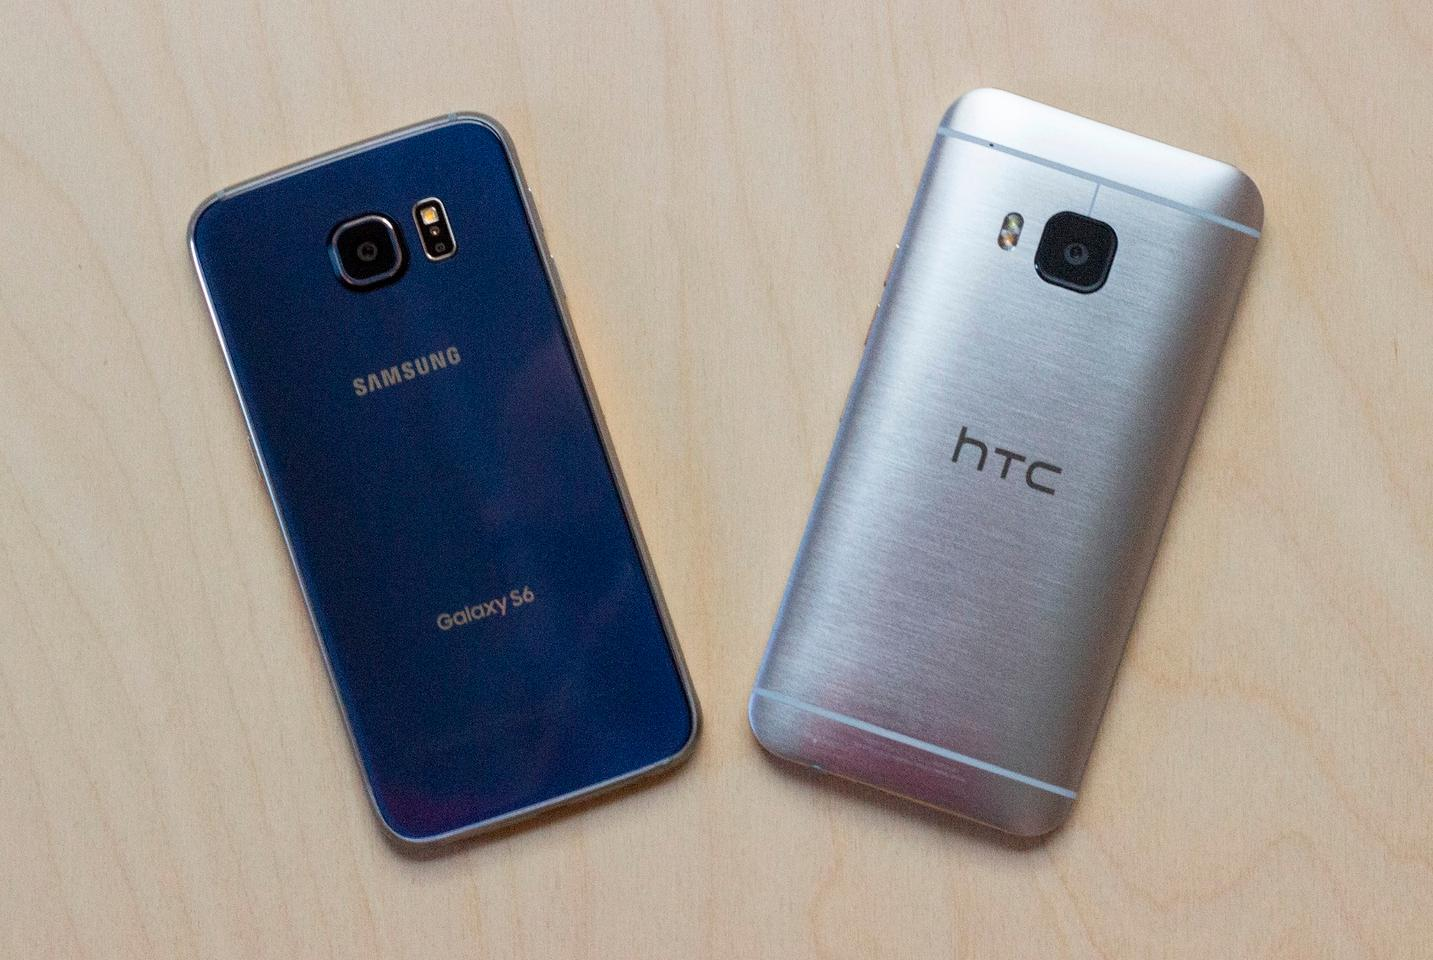 Samsung Galaxy S6 (left) with HTC One M9